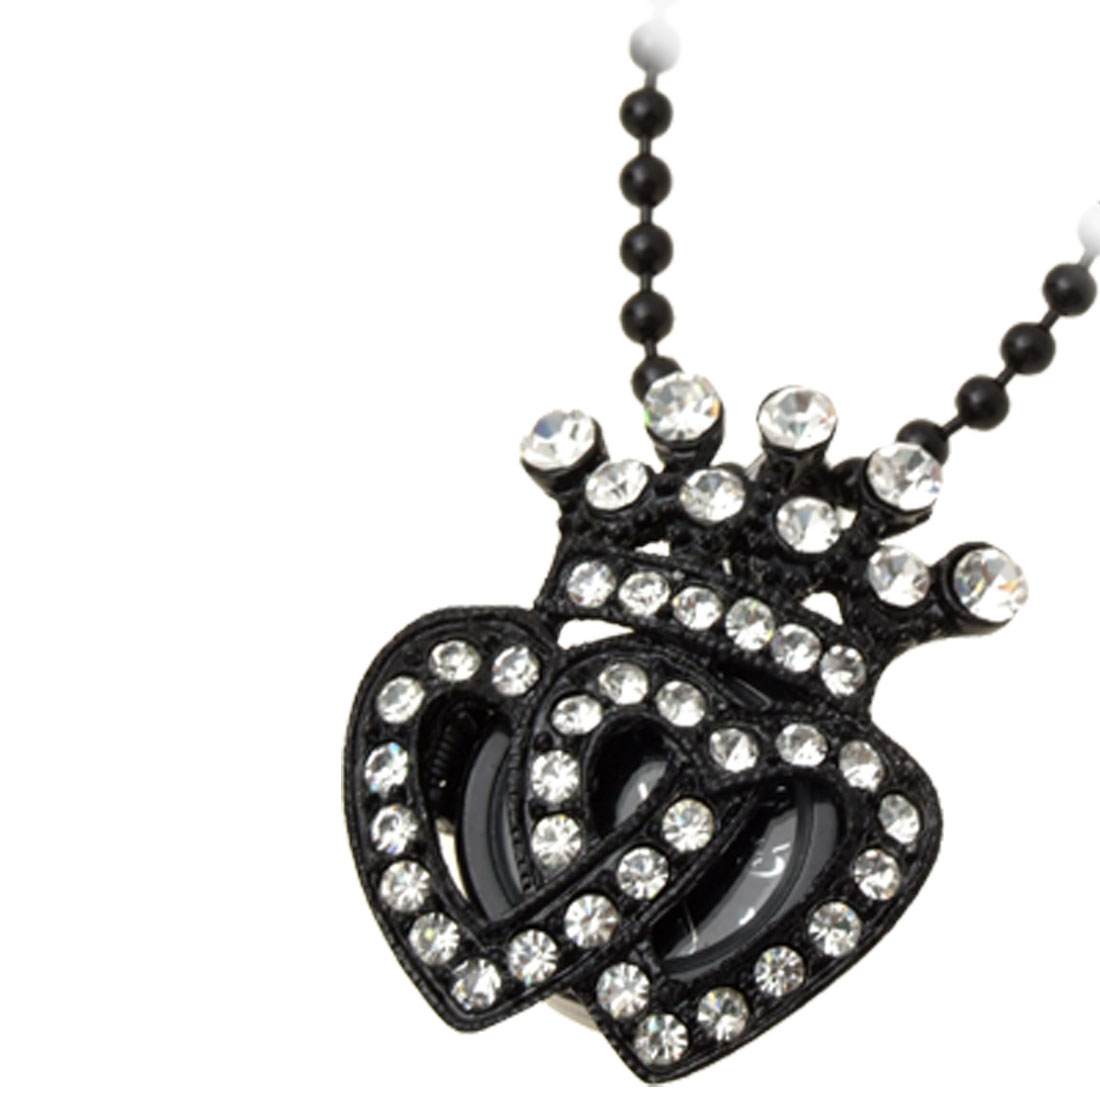 Fashion Jewelry Rhinestone Crown Pendant Necklace Women's Watch